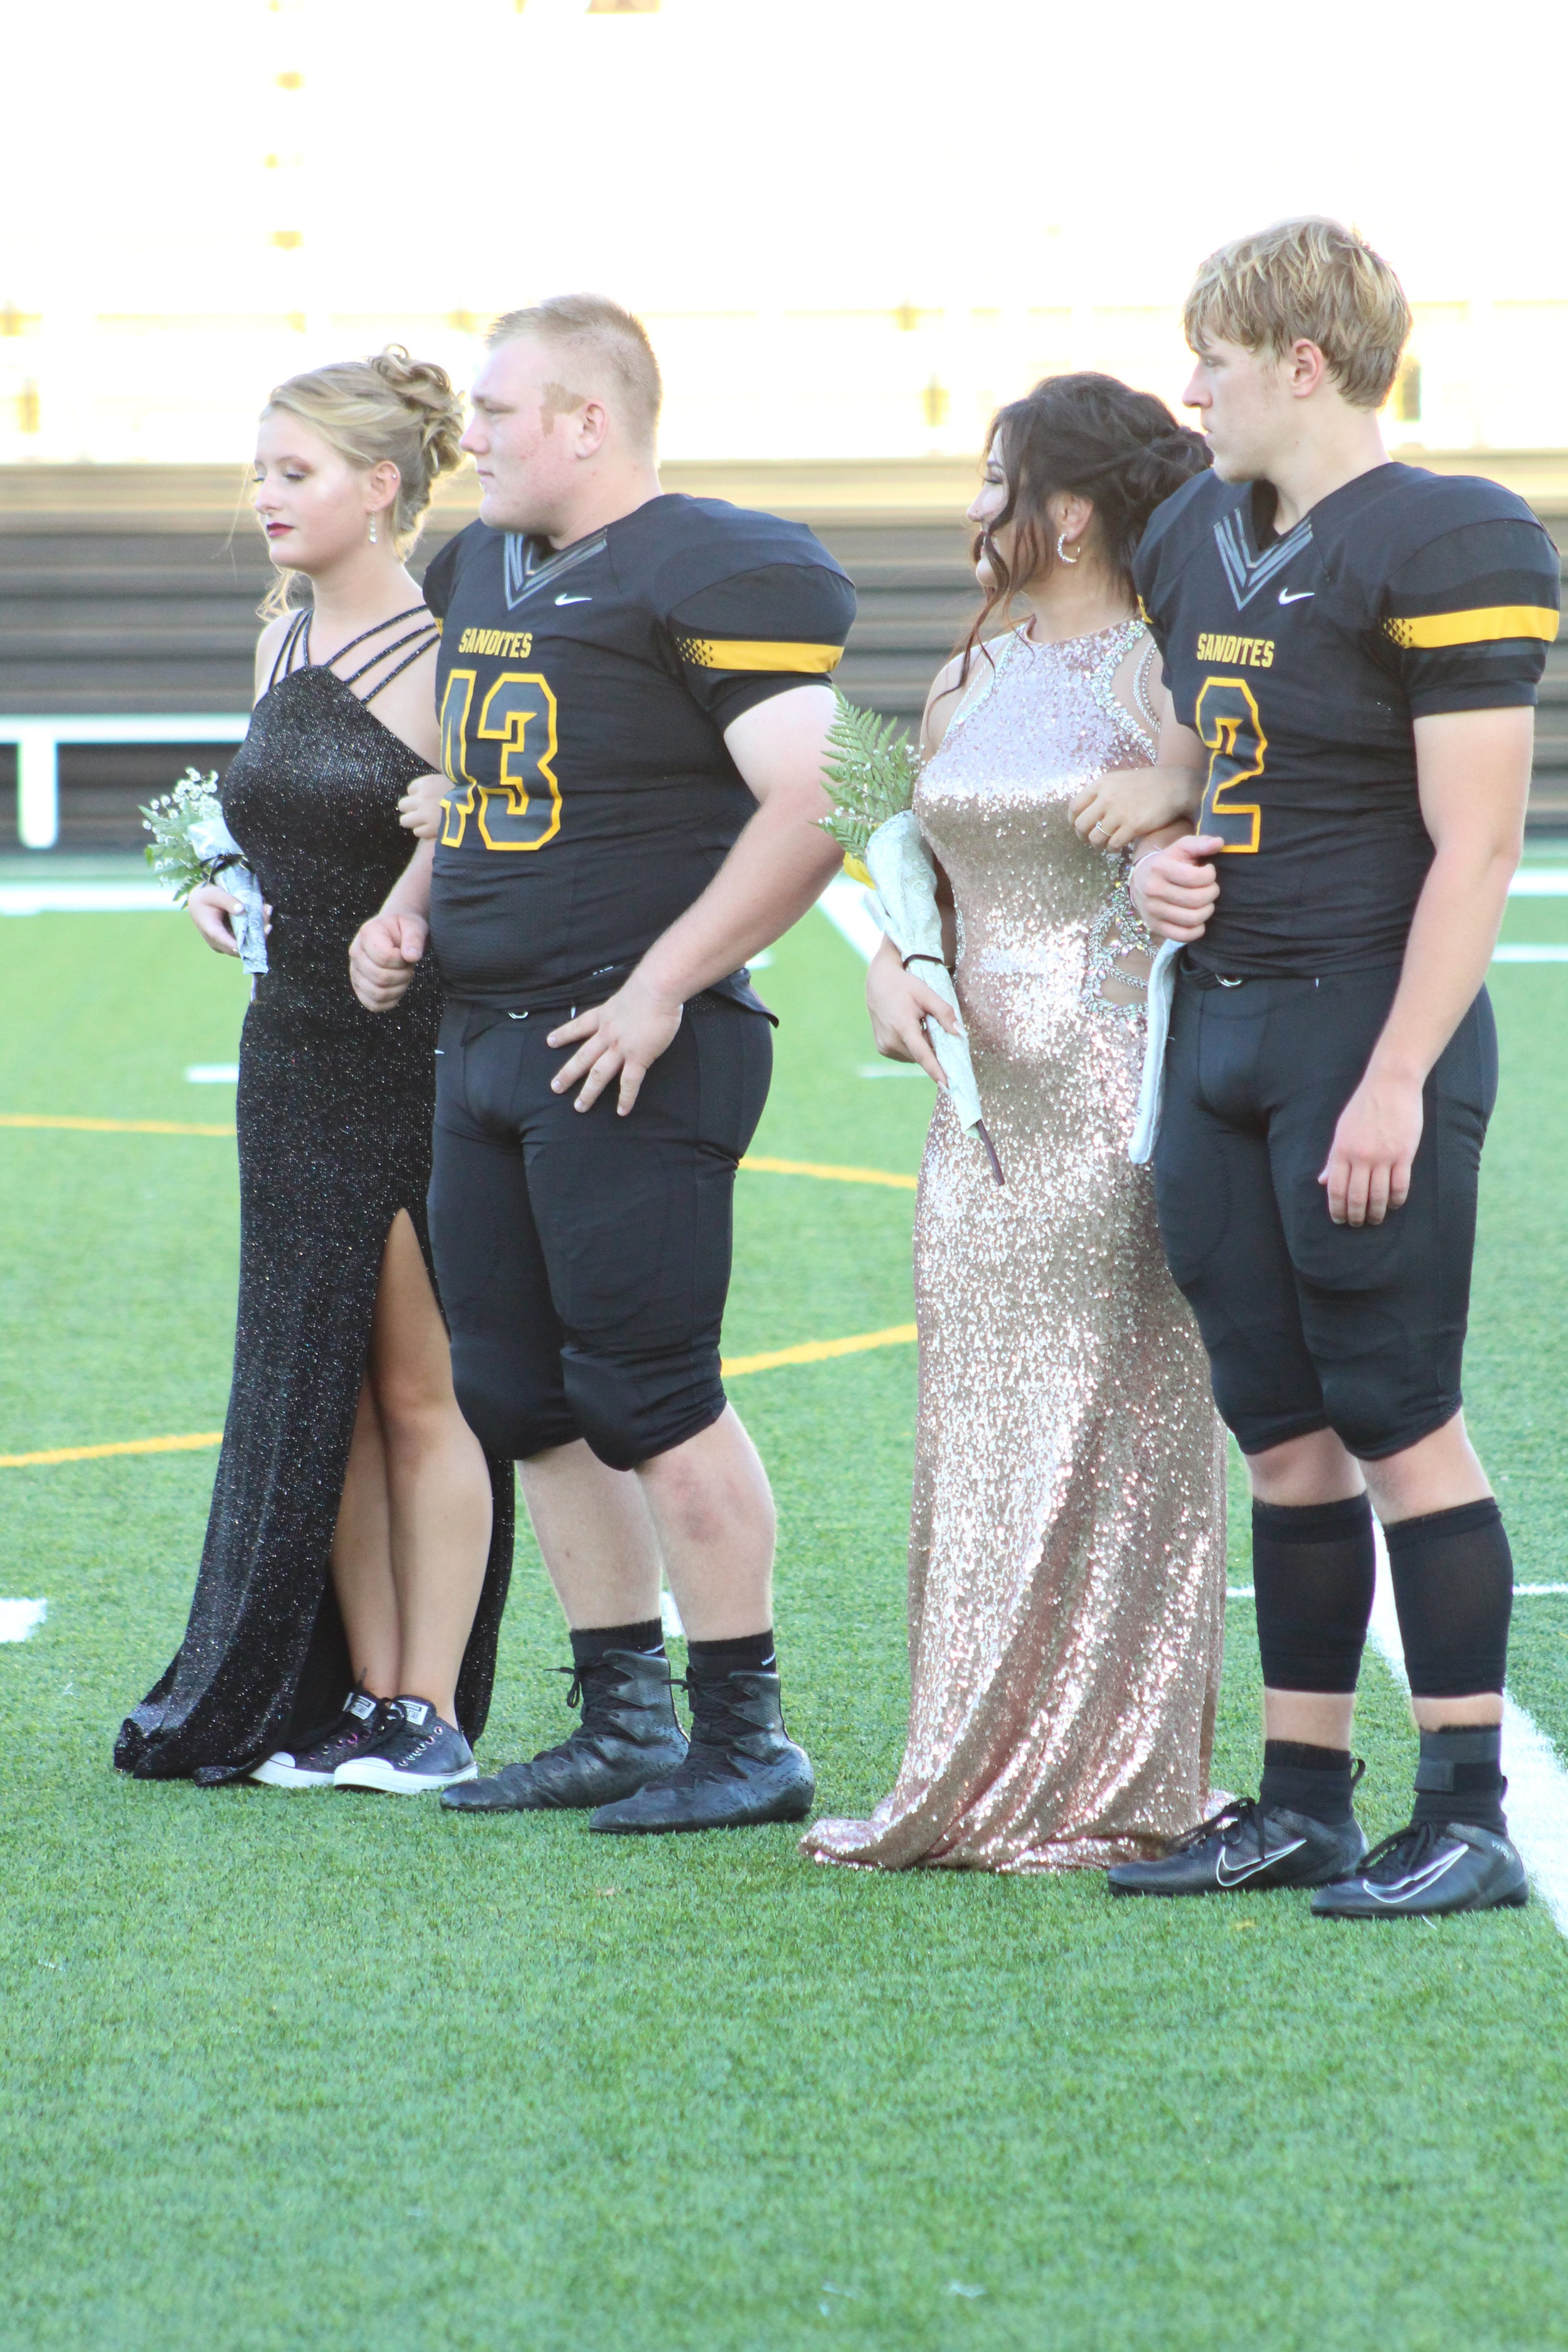 Haley Stuckey (left), escorted by Ethan Sartin. Stuckey is the daughter of Erik and Kerri Stuckey and is a four-year member of the Gold Pride Marching Band. Sartin is the son of Michael and Jennifer Sartin. This is his first year as a varsity linebacker.  Tatum Denton (right), escorted by Justin Roe. Denton is the daughter of Brad and Angela Denton. She is a three-year varsity dancer. Roe is the son of David and Dianna Roe. He is a three-year varsity wide receiver and defensive back.